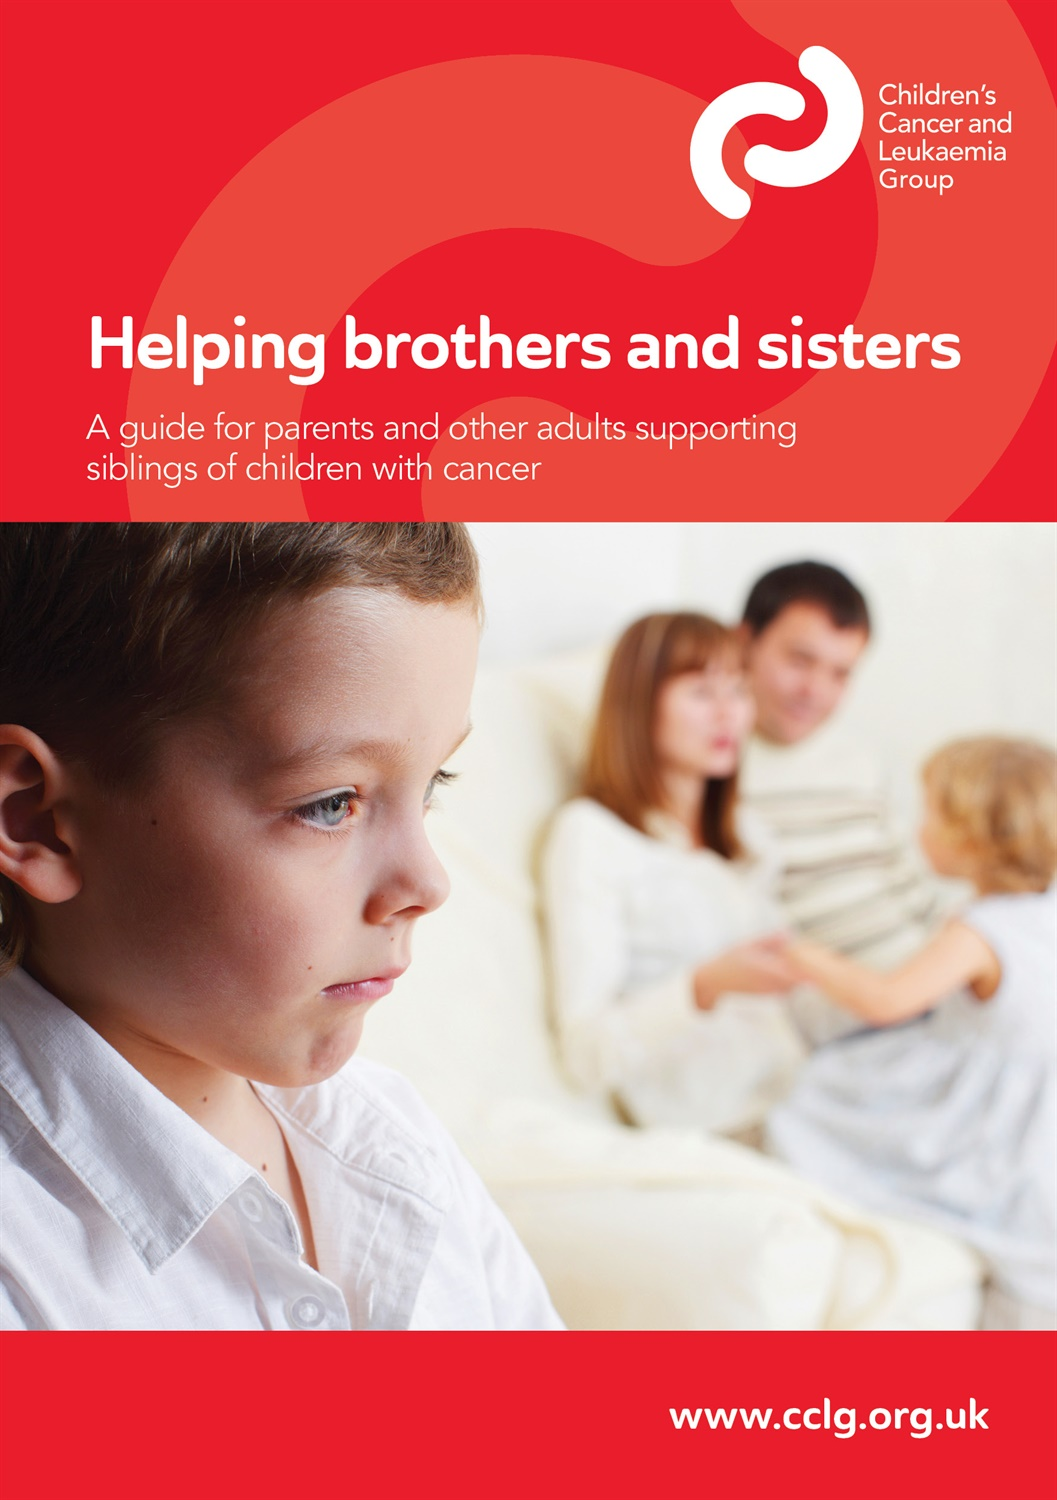 Helping brothers and sisters 2016